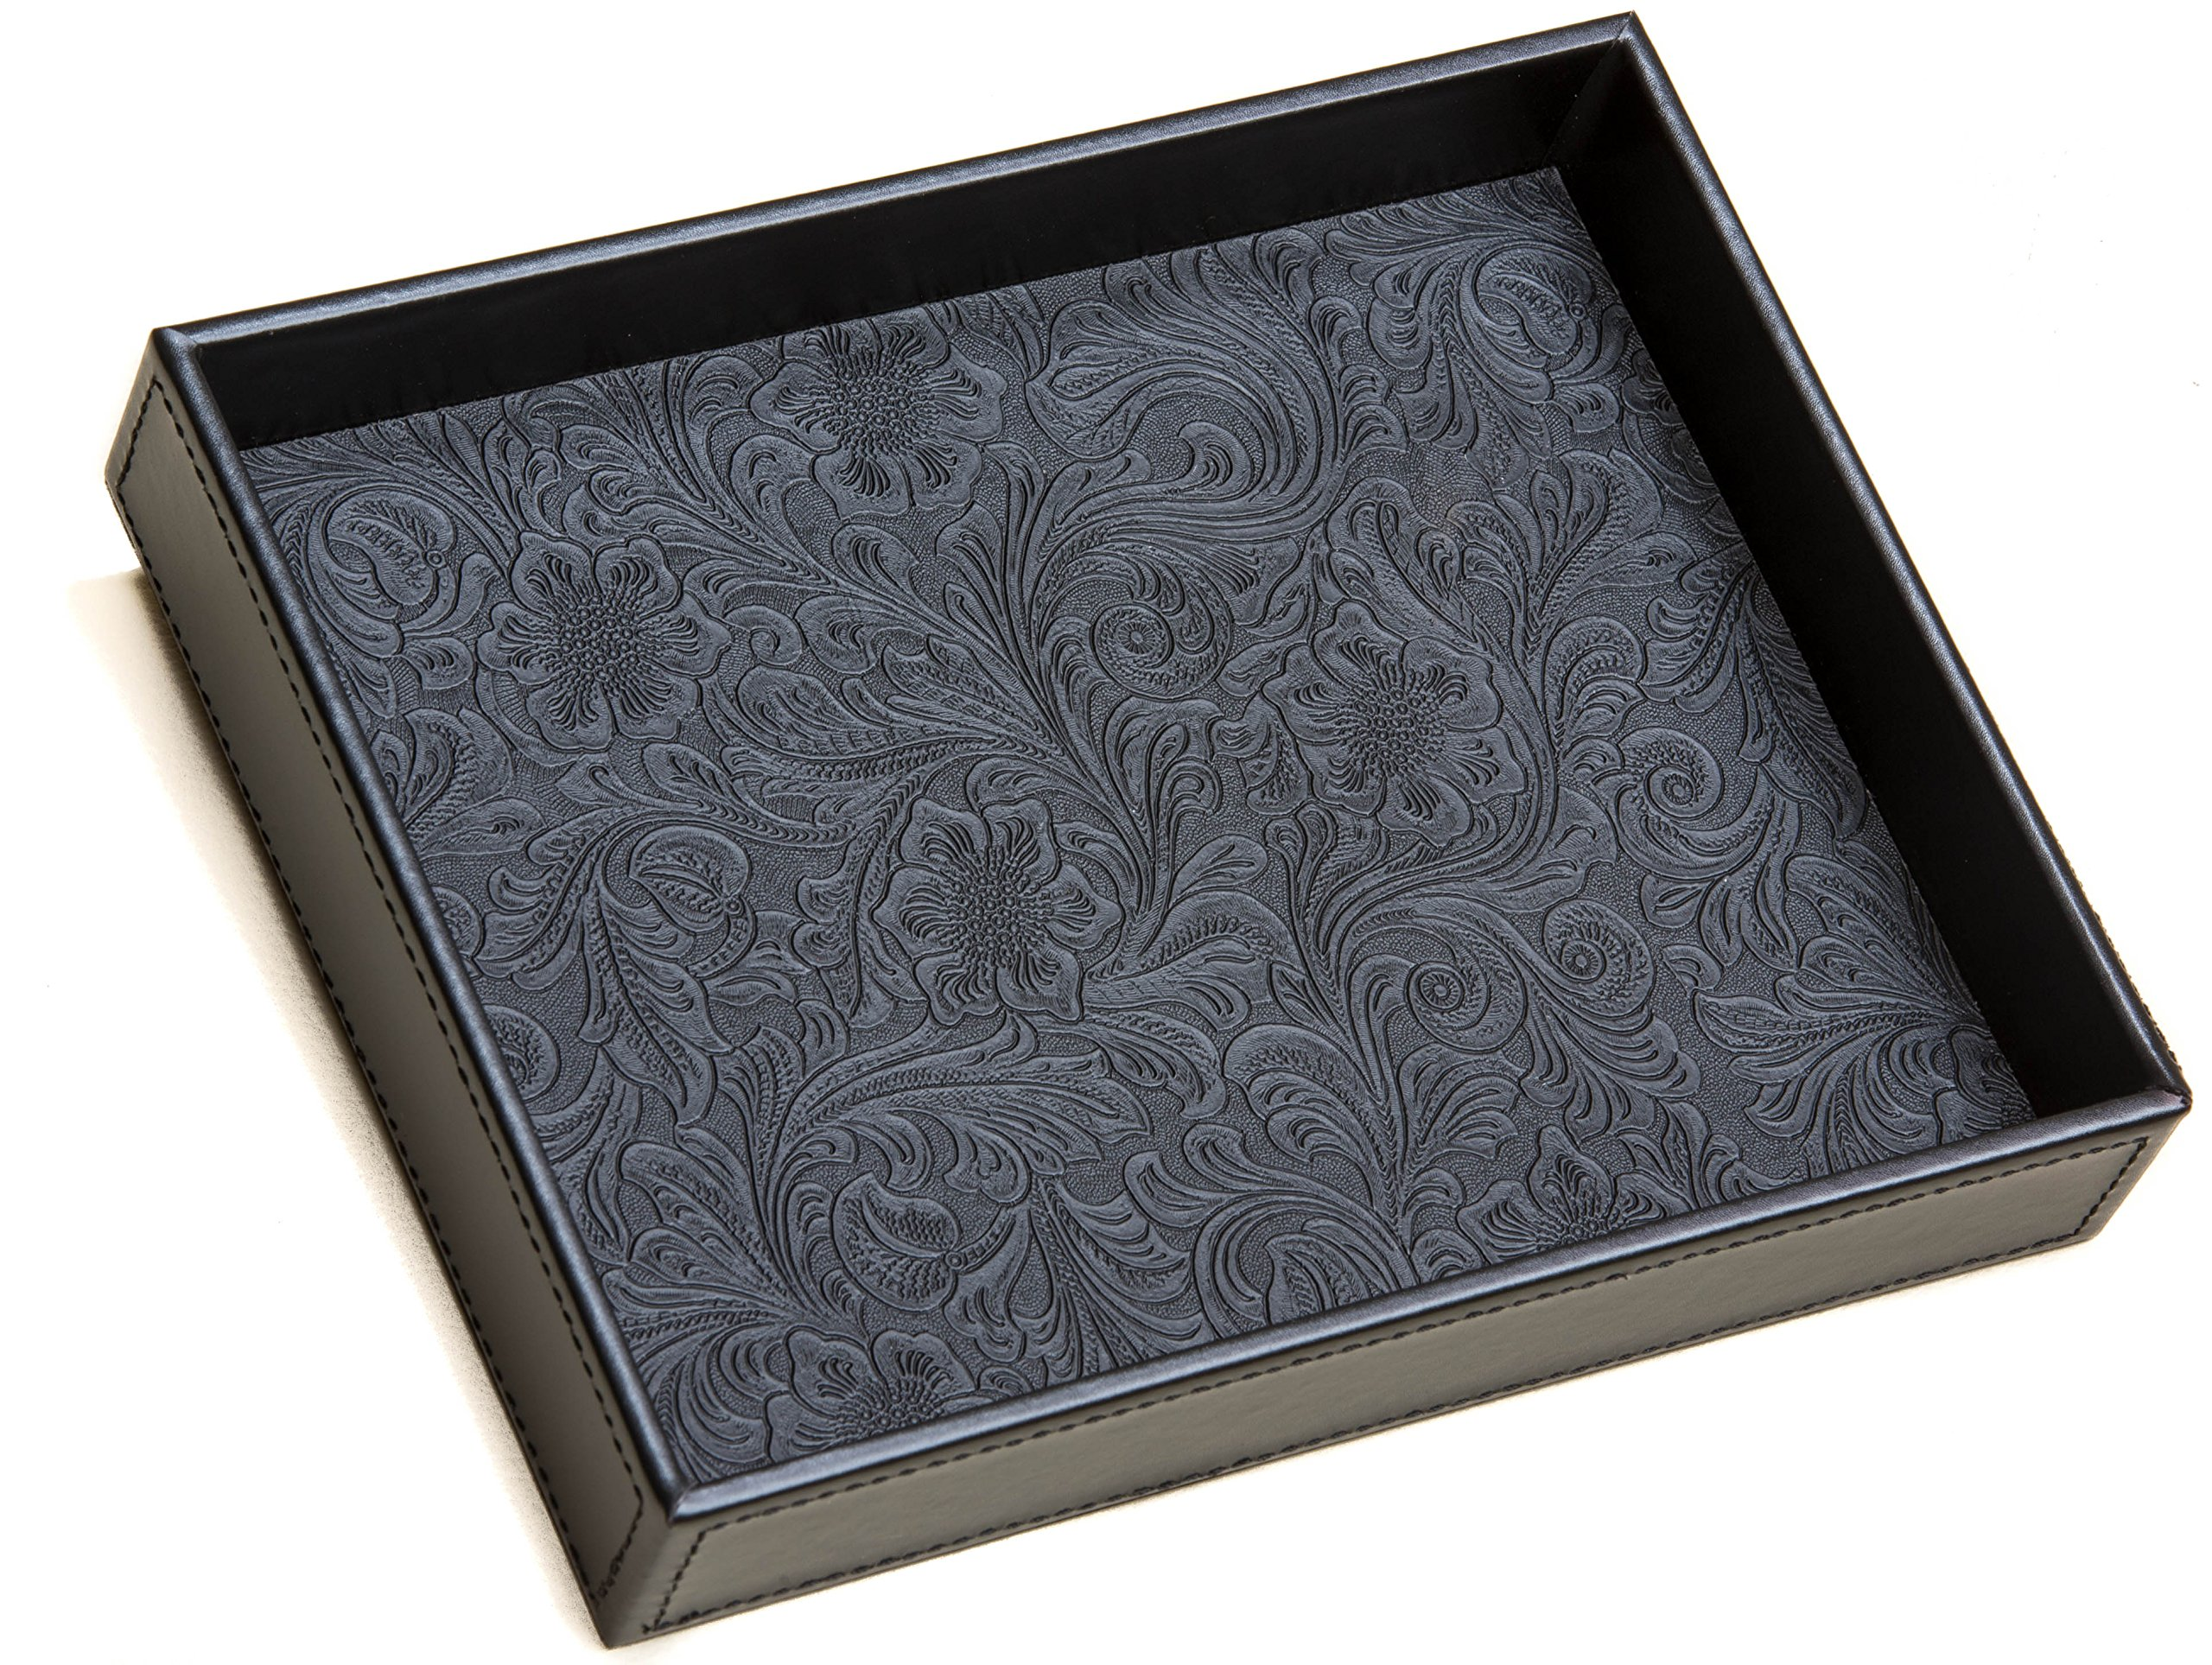 ''Yankee Rose'' Valet Tray Organizer by Affable Jack - Decorative Black Catchall for Home and Office